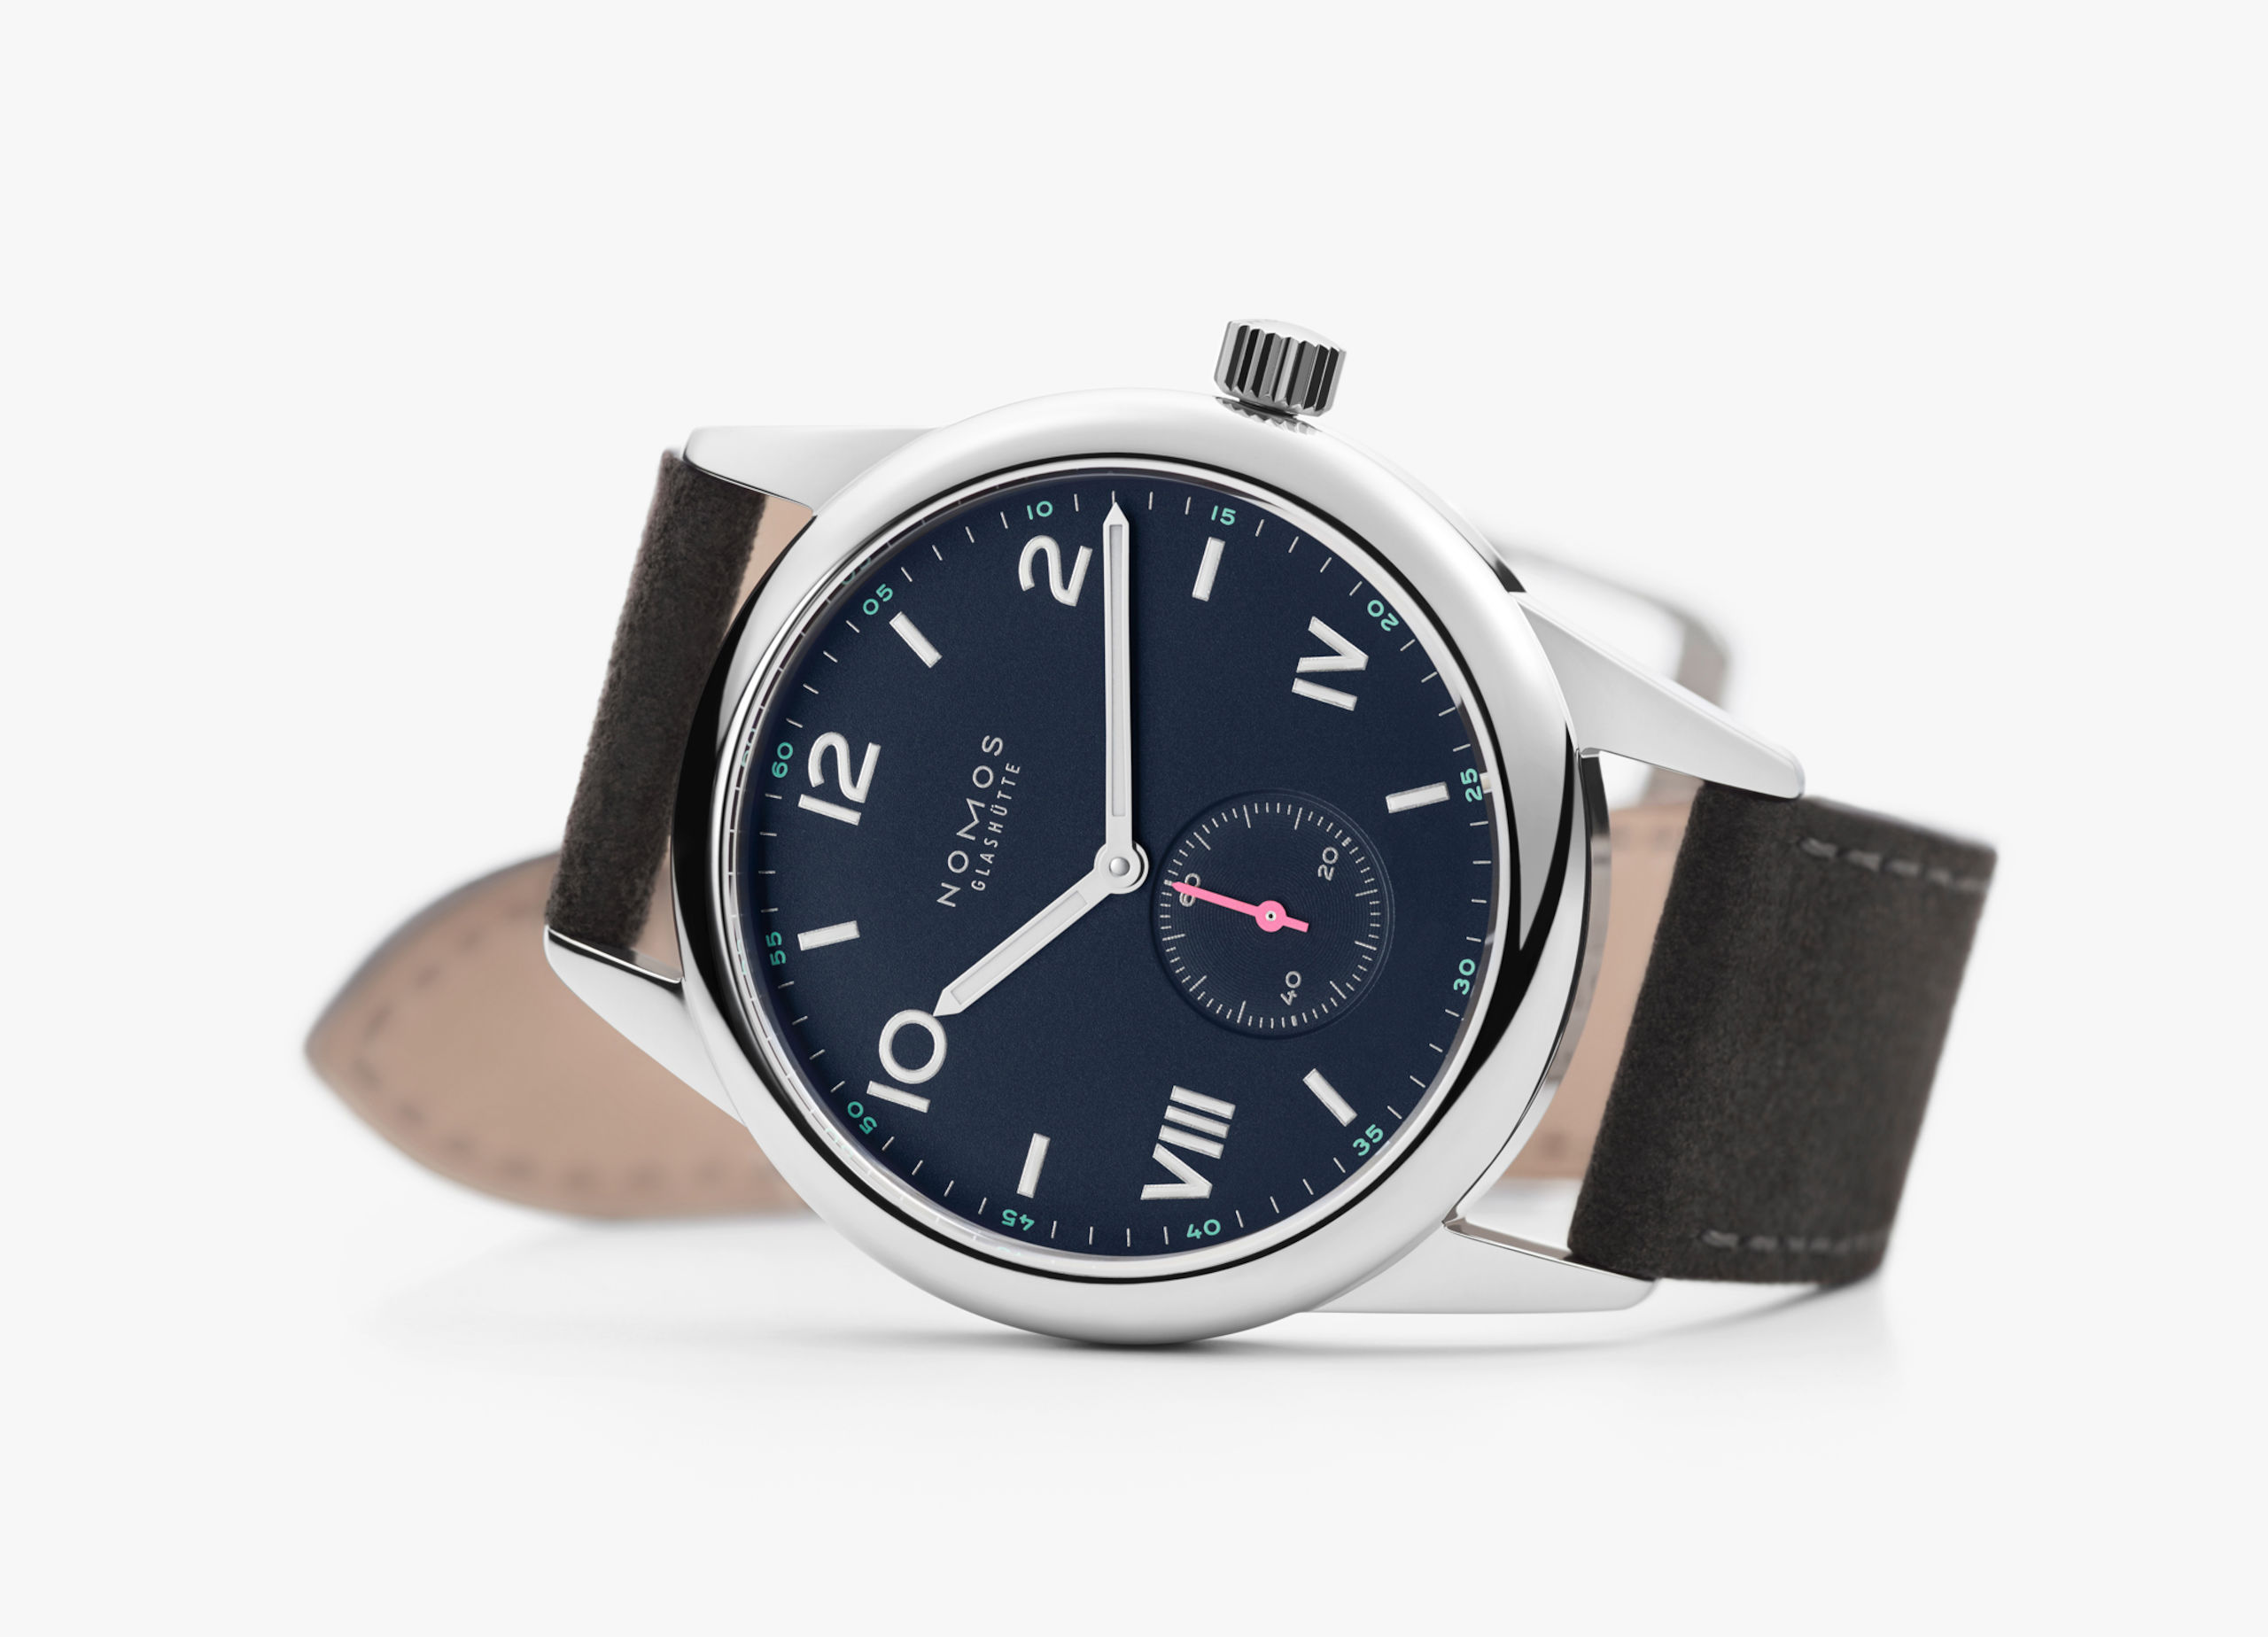 Image of watch with brown leather strap and silver and blue face